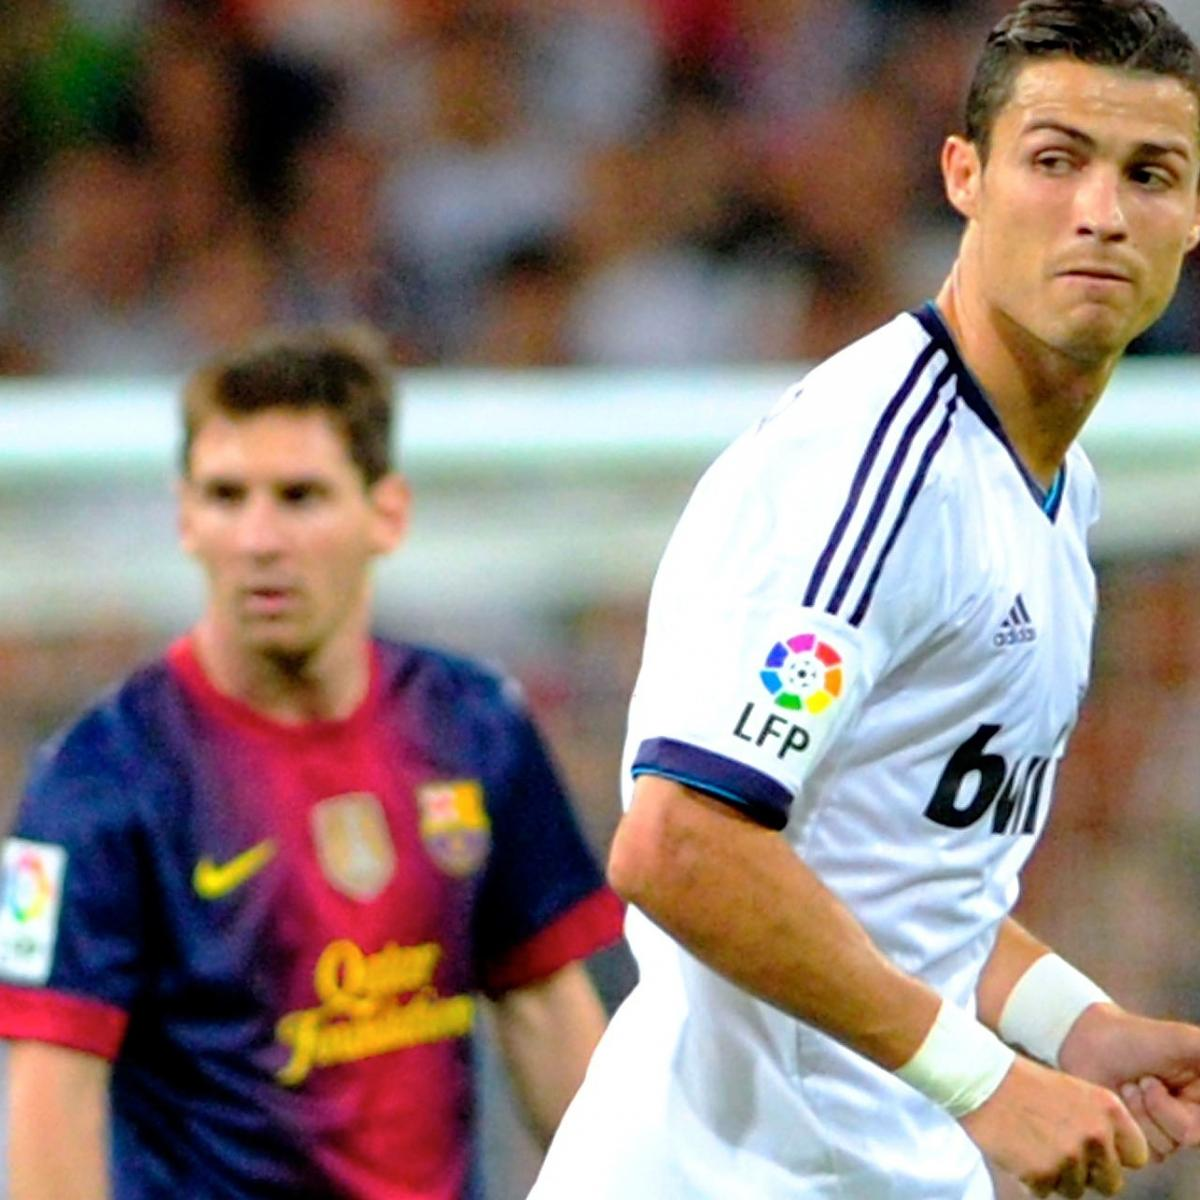 Cristiano Ronaldo I M Not Playing Just Lionel Messi: Ronaldo Claims Lionel Messi Is A More Complete Player Than